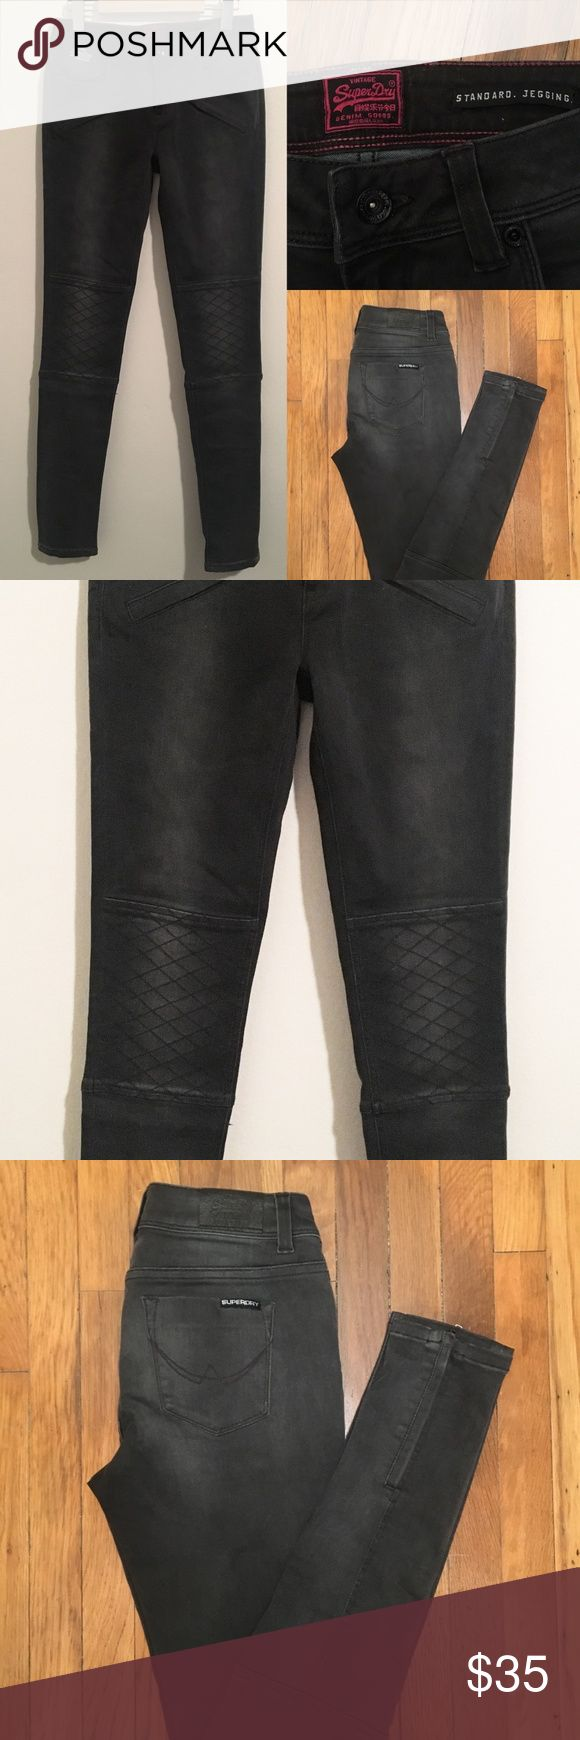 SUPERDRY MOTO JEGGING DENIM JEANS NEW! Size 28 Never-worn Superdry moto jeggings  Size: 28 Color: Charcoal Details: Front angled zips, side-ankle zips Superdry Pants Leggings